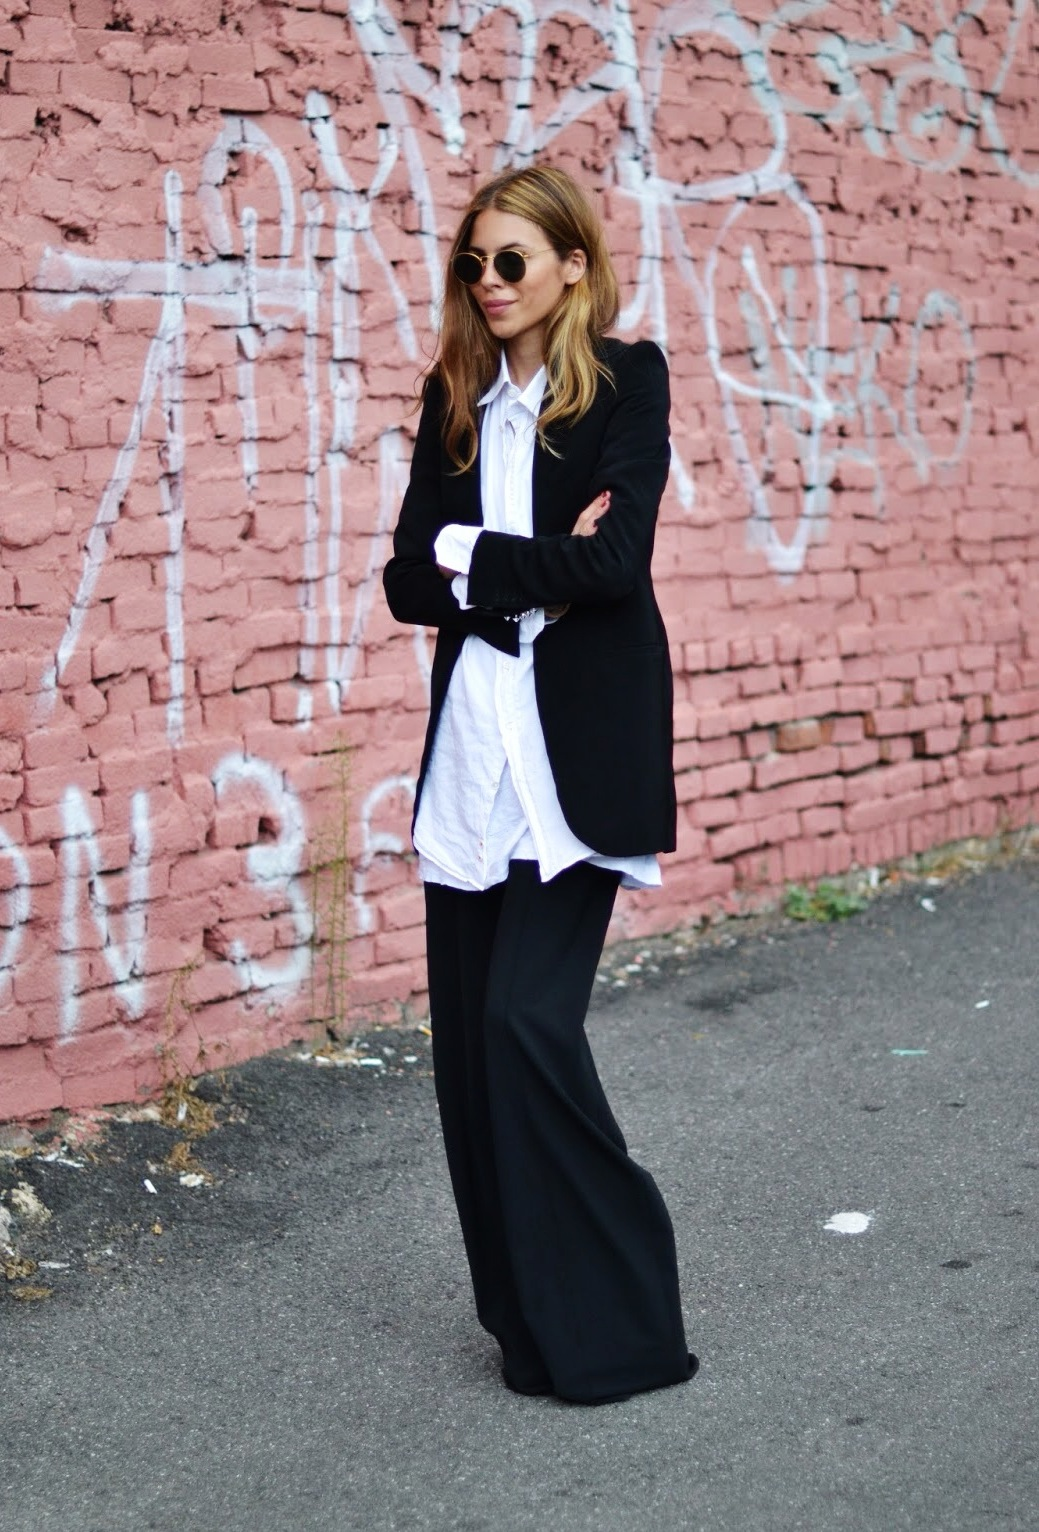 Maja Wyh is wearing a black blazer, white shirt and pants from Elizabeth and James